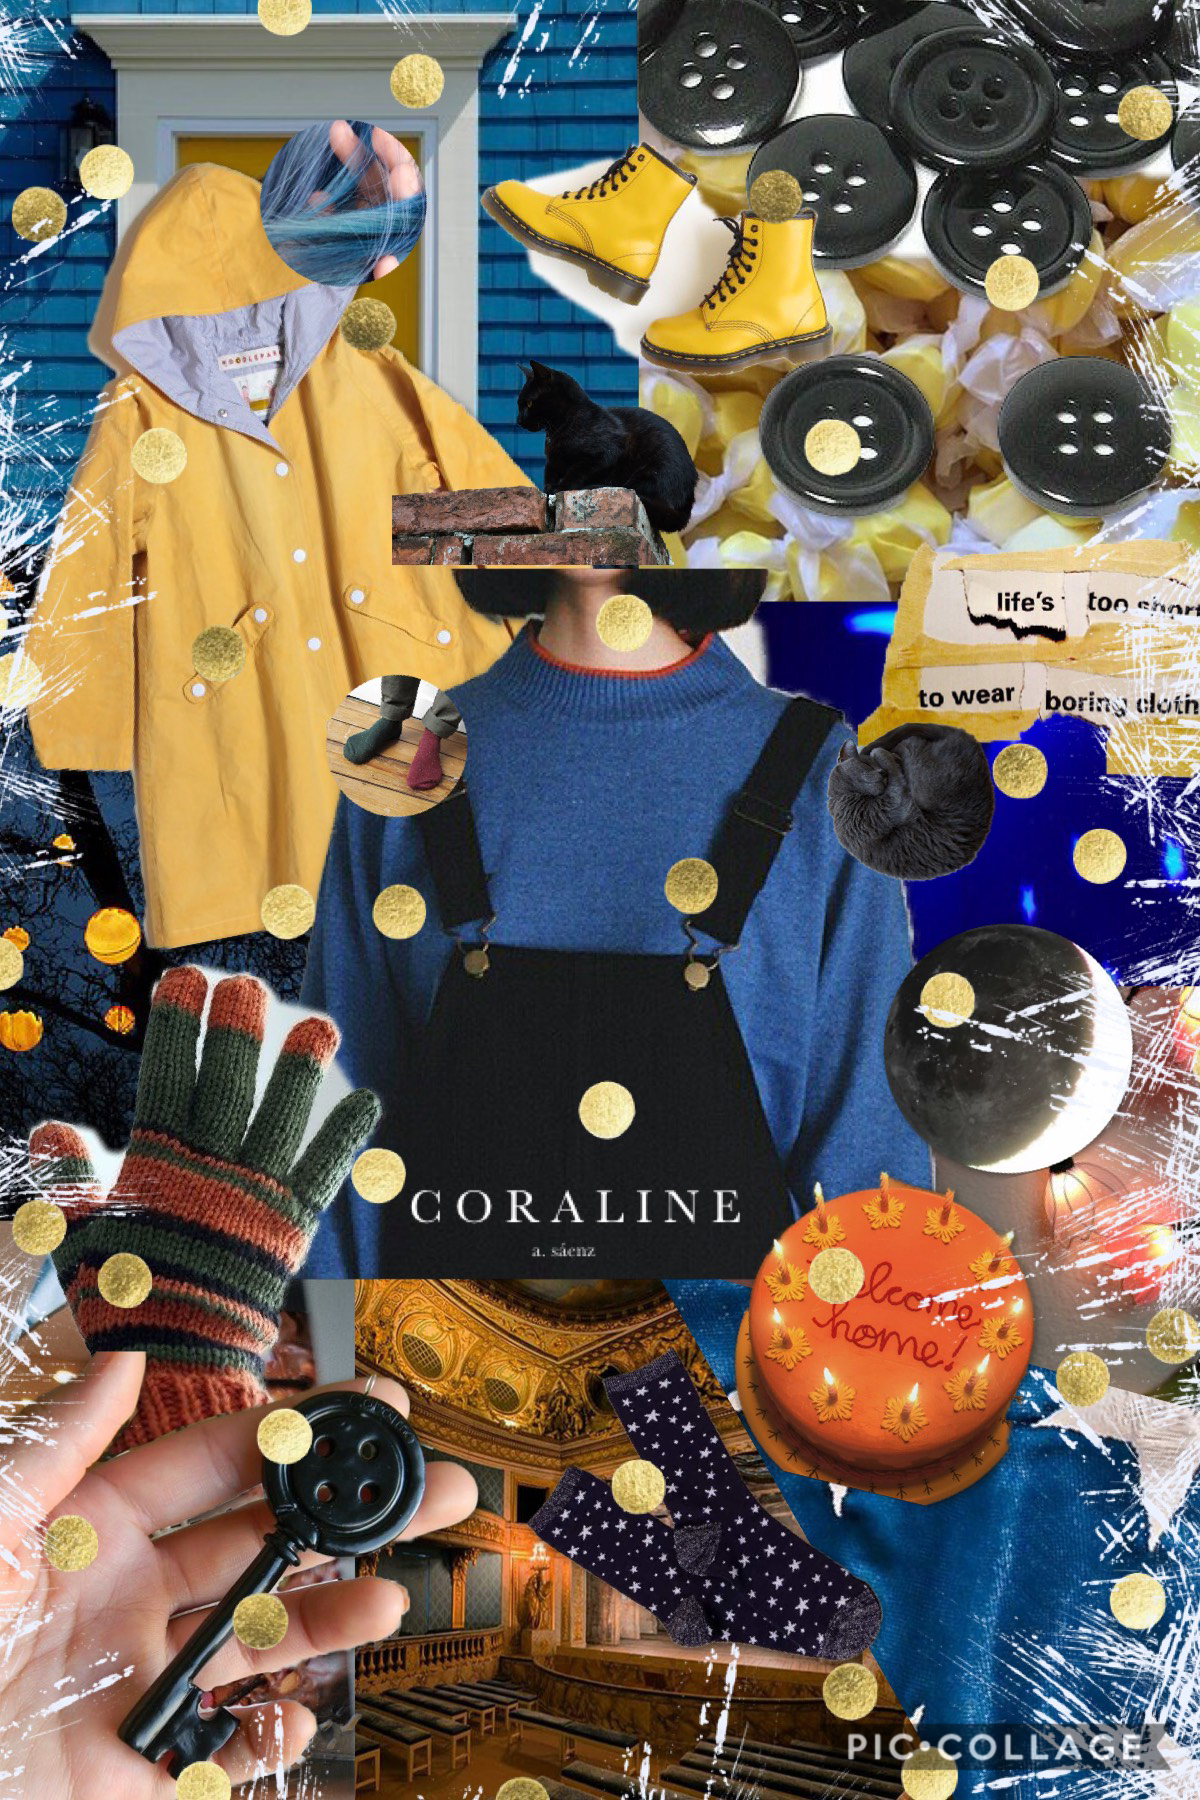 quantum physics and chill, anyone? 💫🌌✨ also, what's your take on coraline and your favorite song right now? ☄️